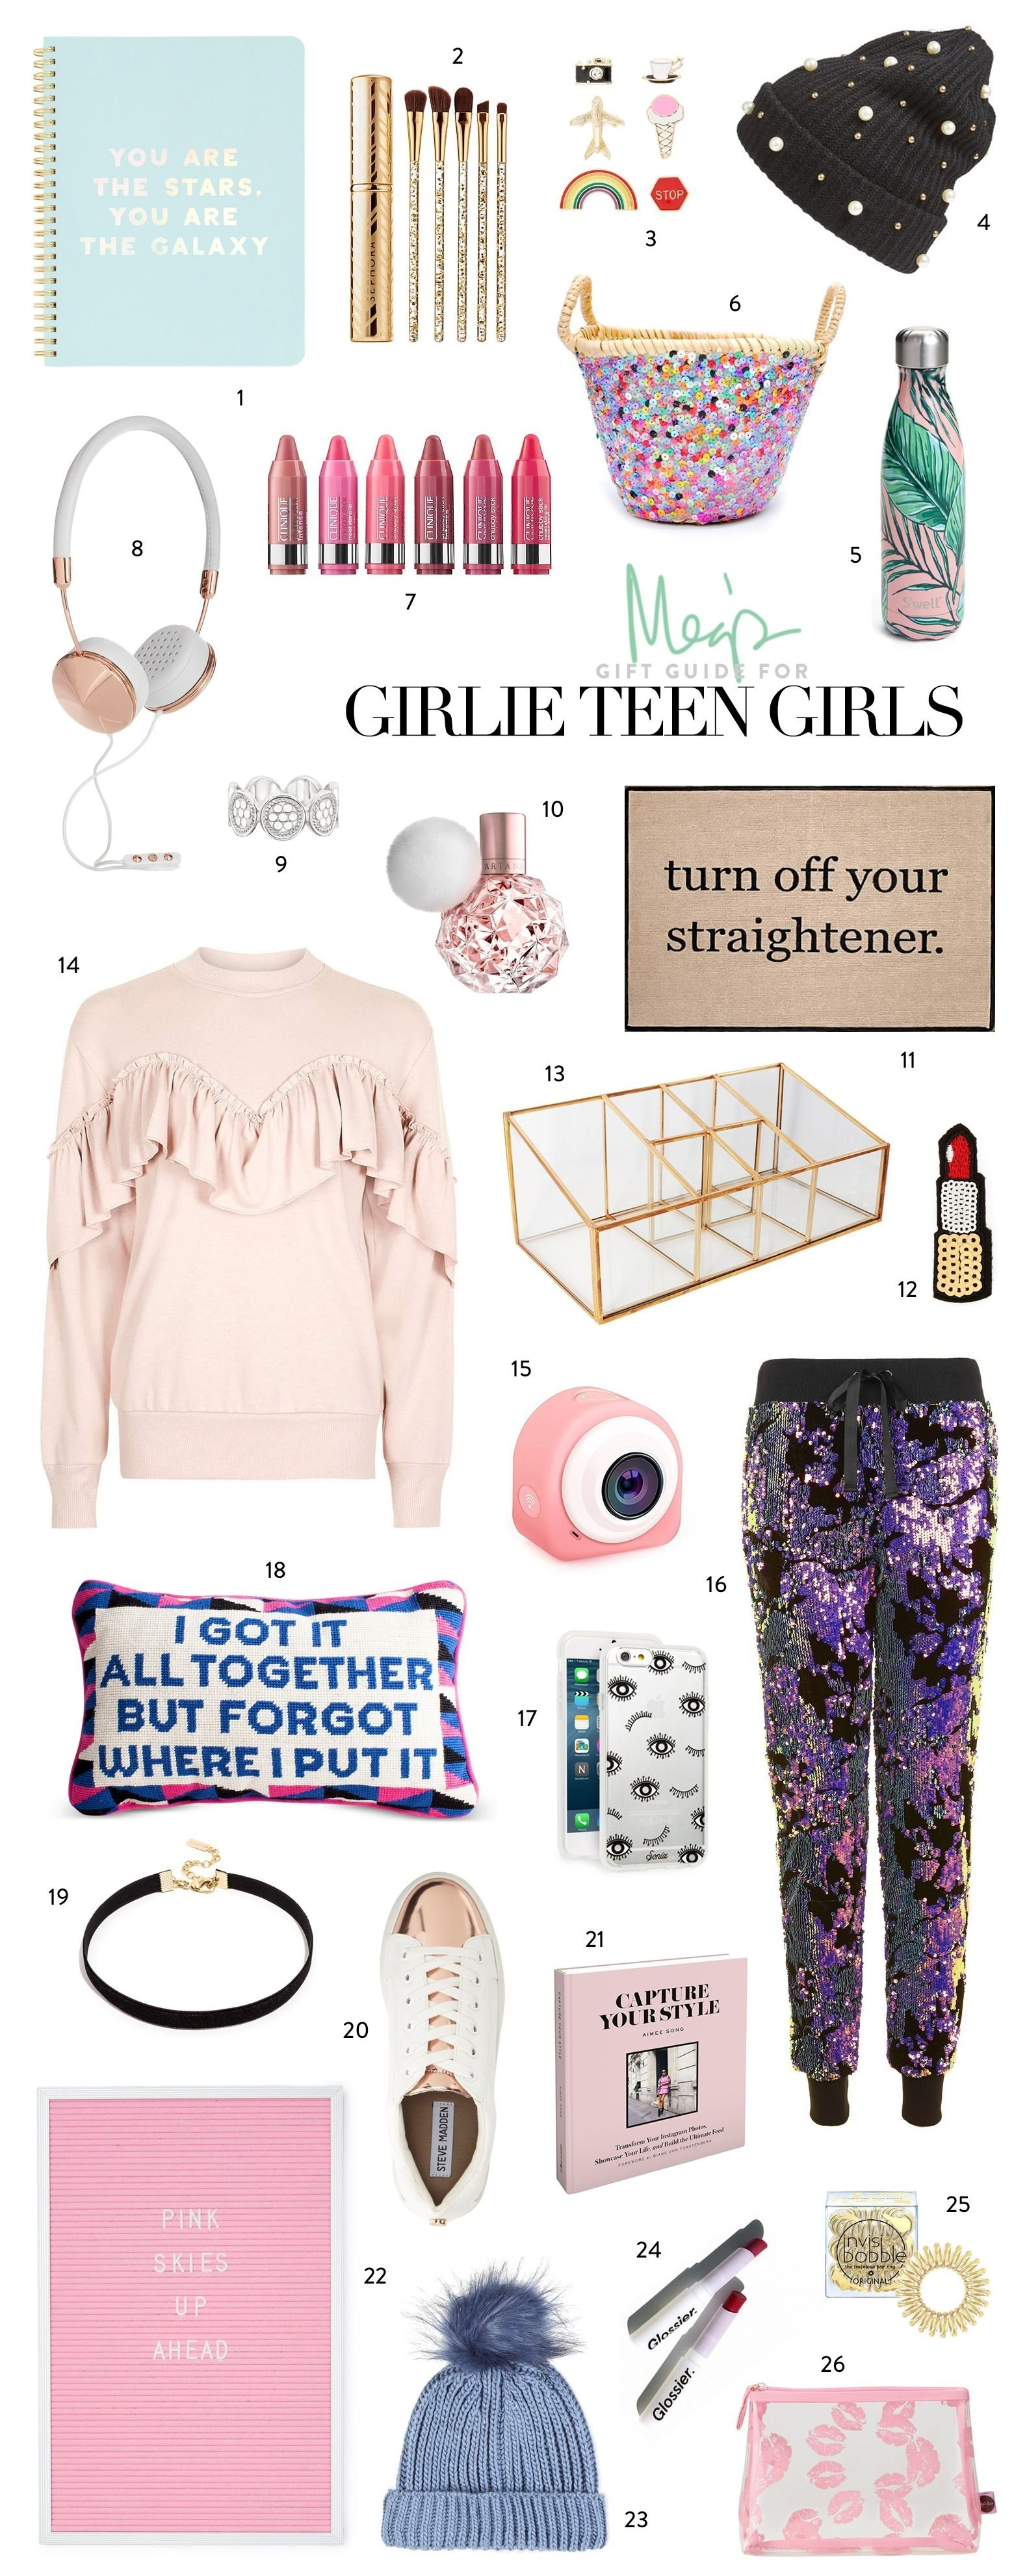 10 Attractive Tween Gift Ideas For Girls holiday gift guide girlie teen girls holiday gift guide teen 31 2020